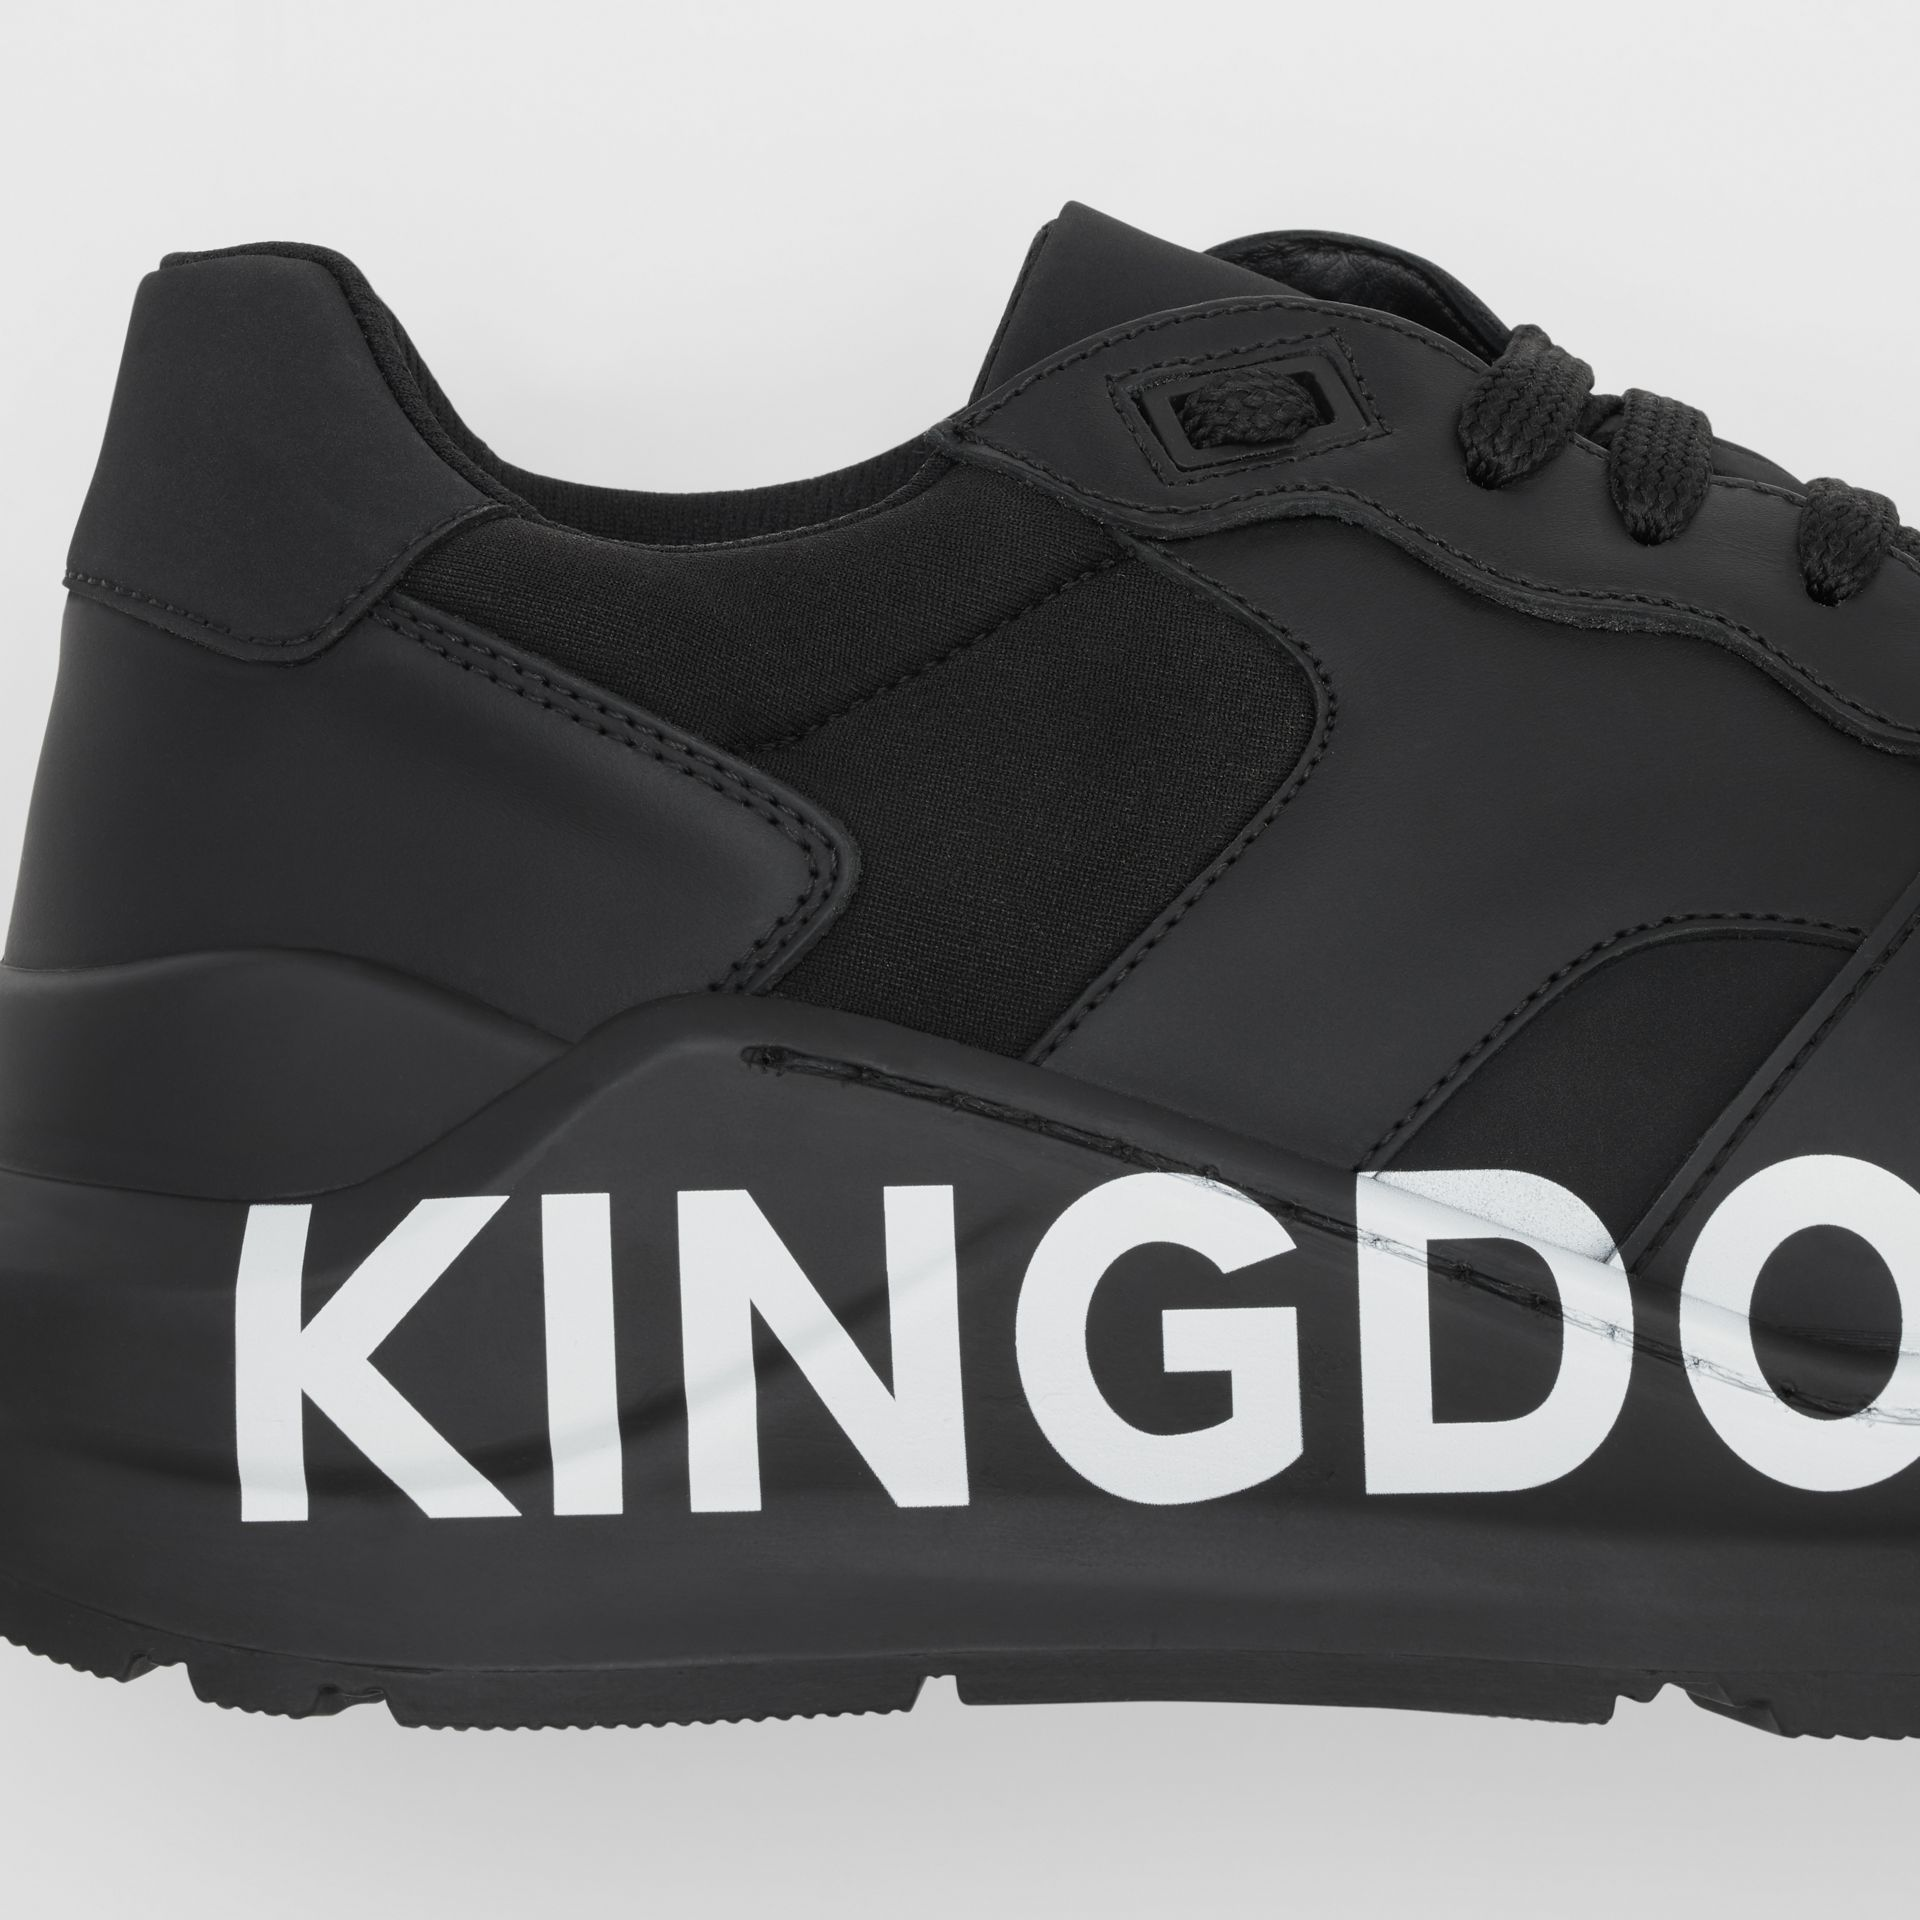 Kingdom Print Neoprene and Leather Sneakers in Black - Men | Burberry United States - gallery image 1